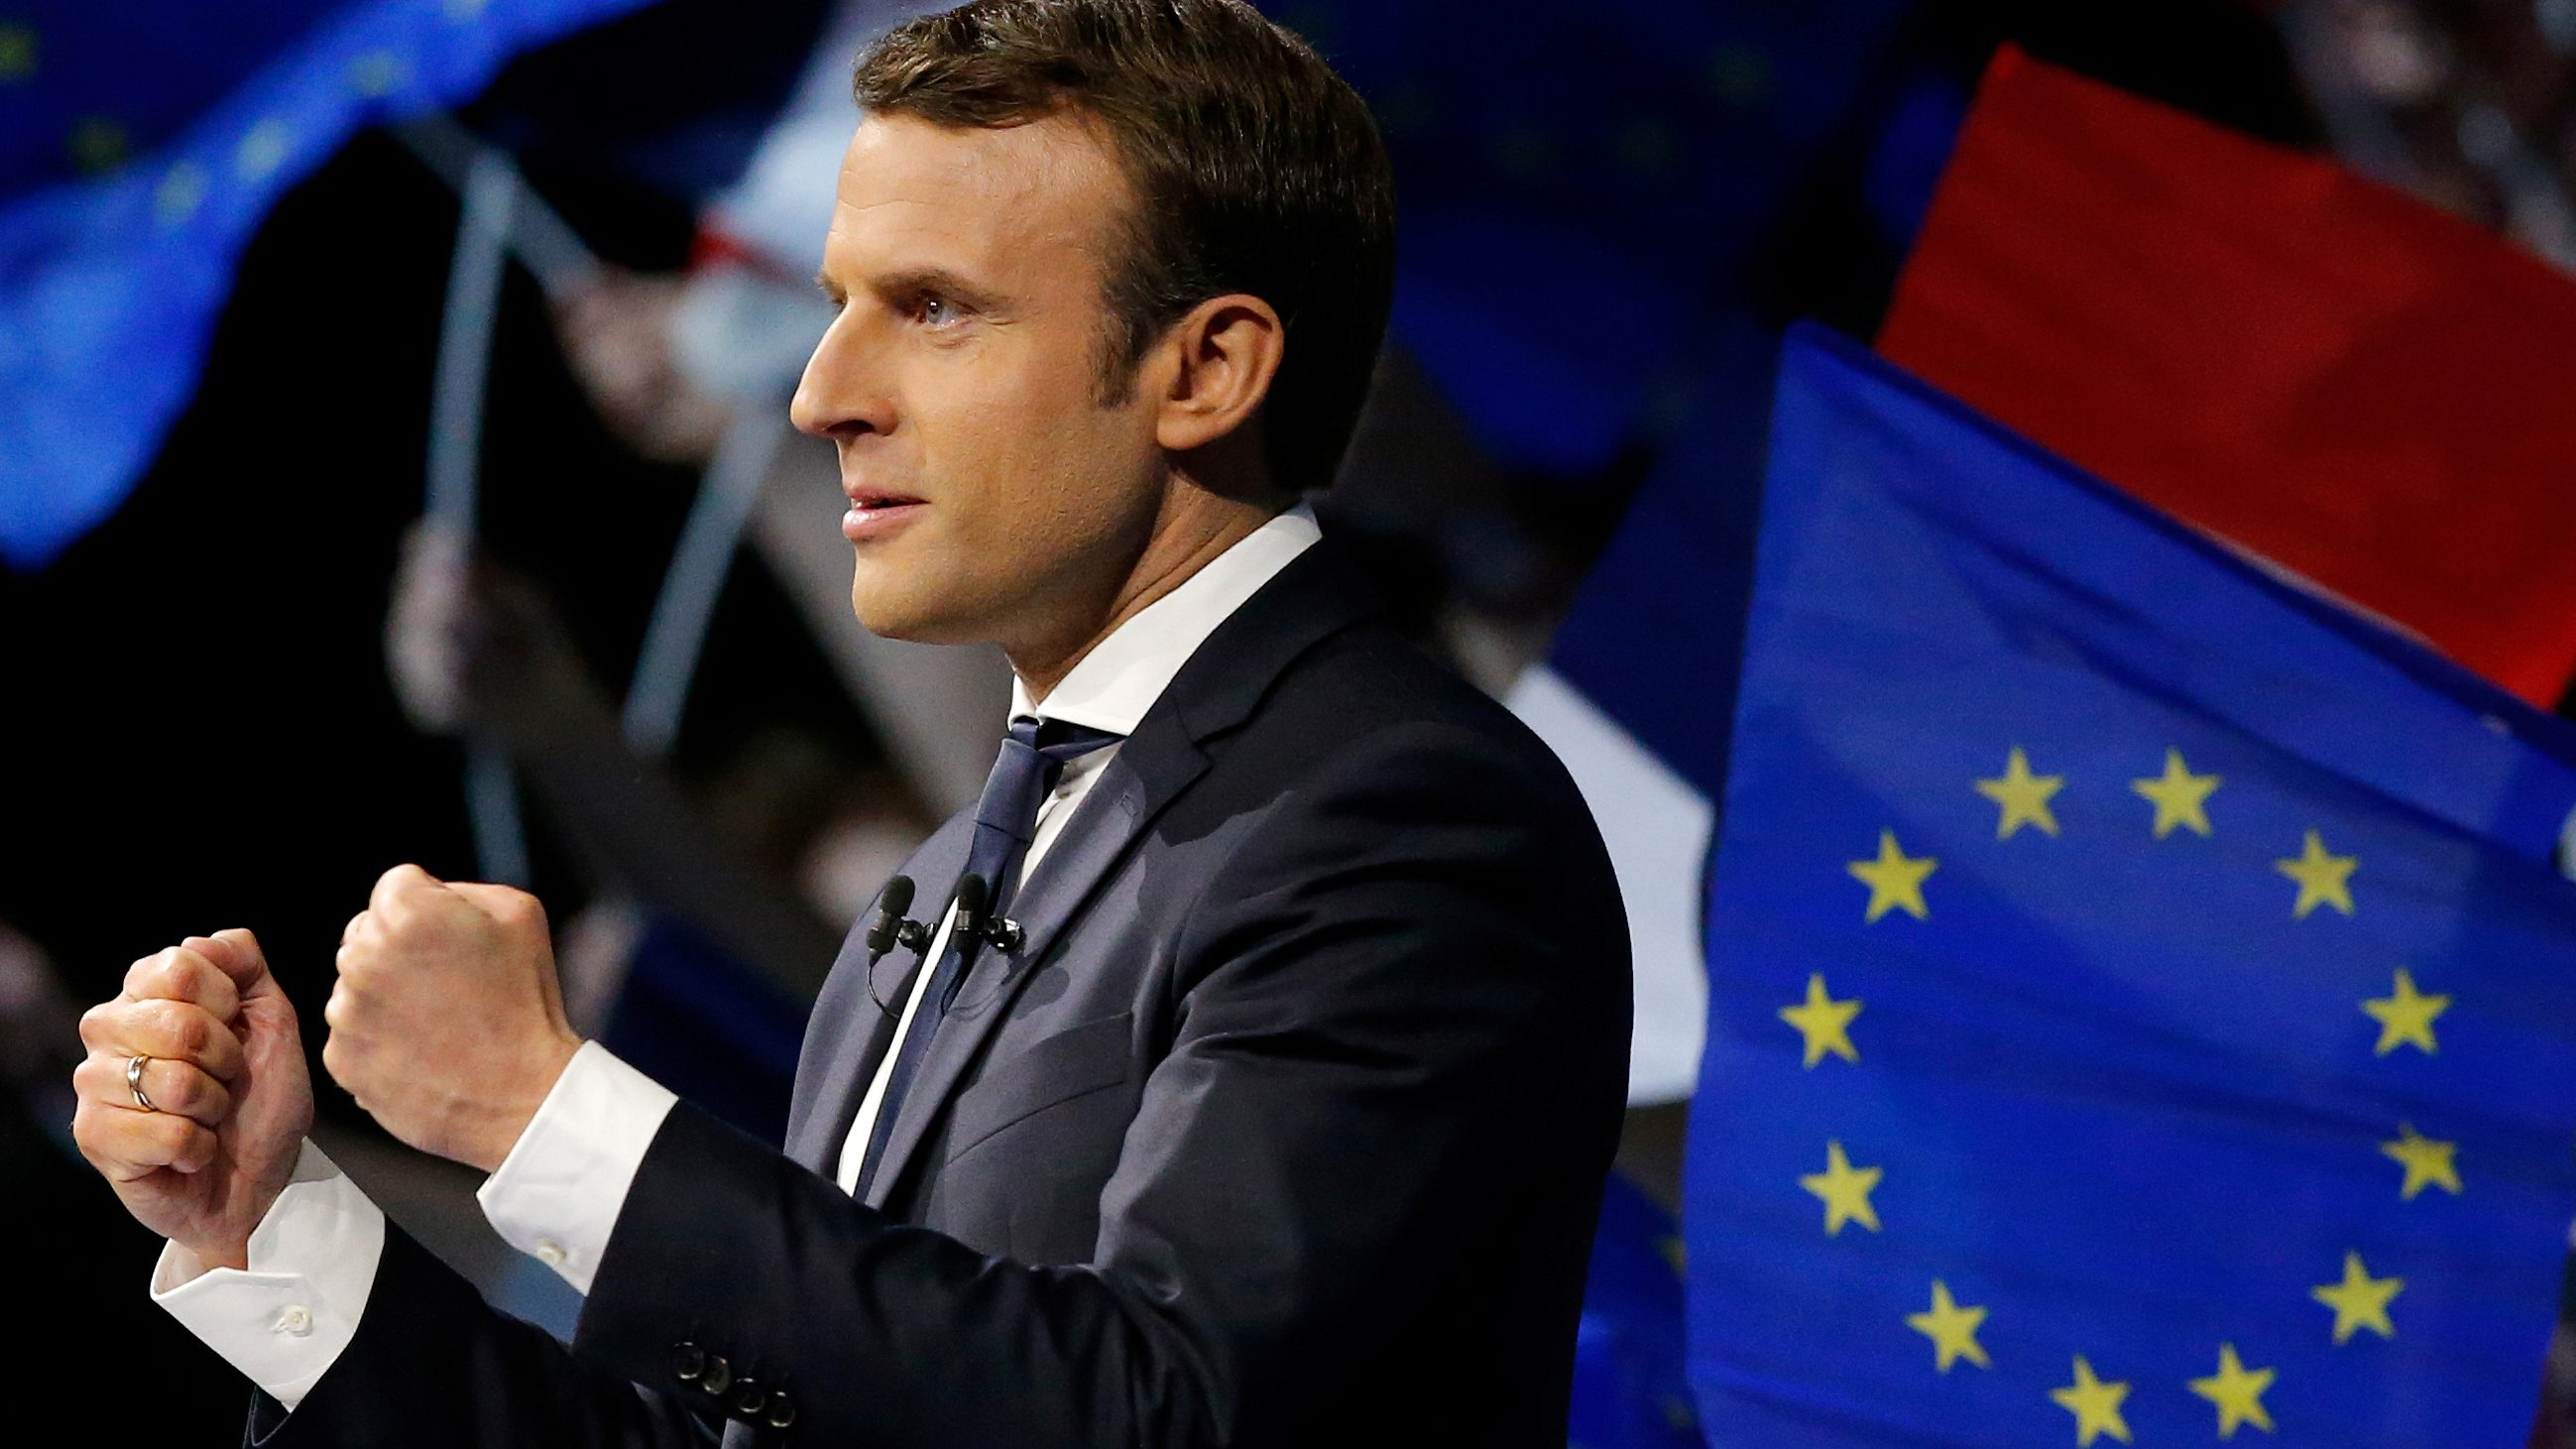 French Election Emmanuel Macron Has Defeated Marine Le Pen To Become President Of France Before The Age Of 40 Quartz